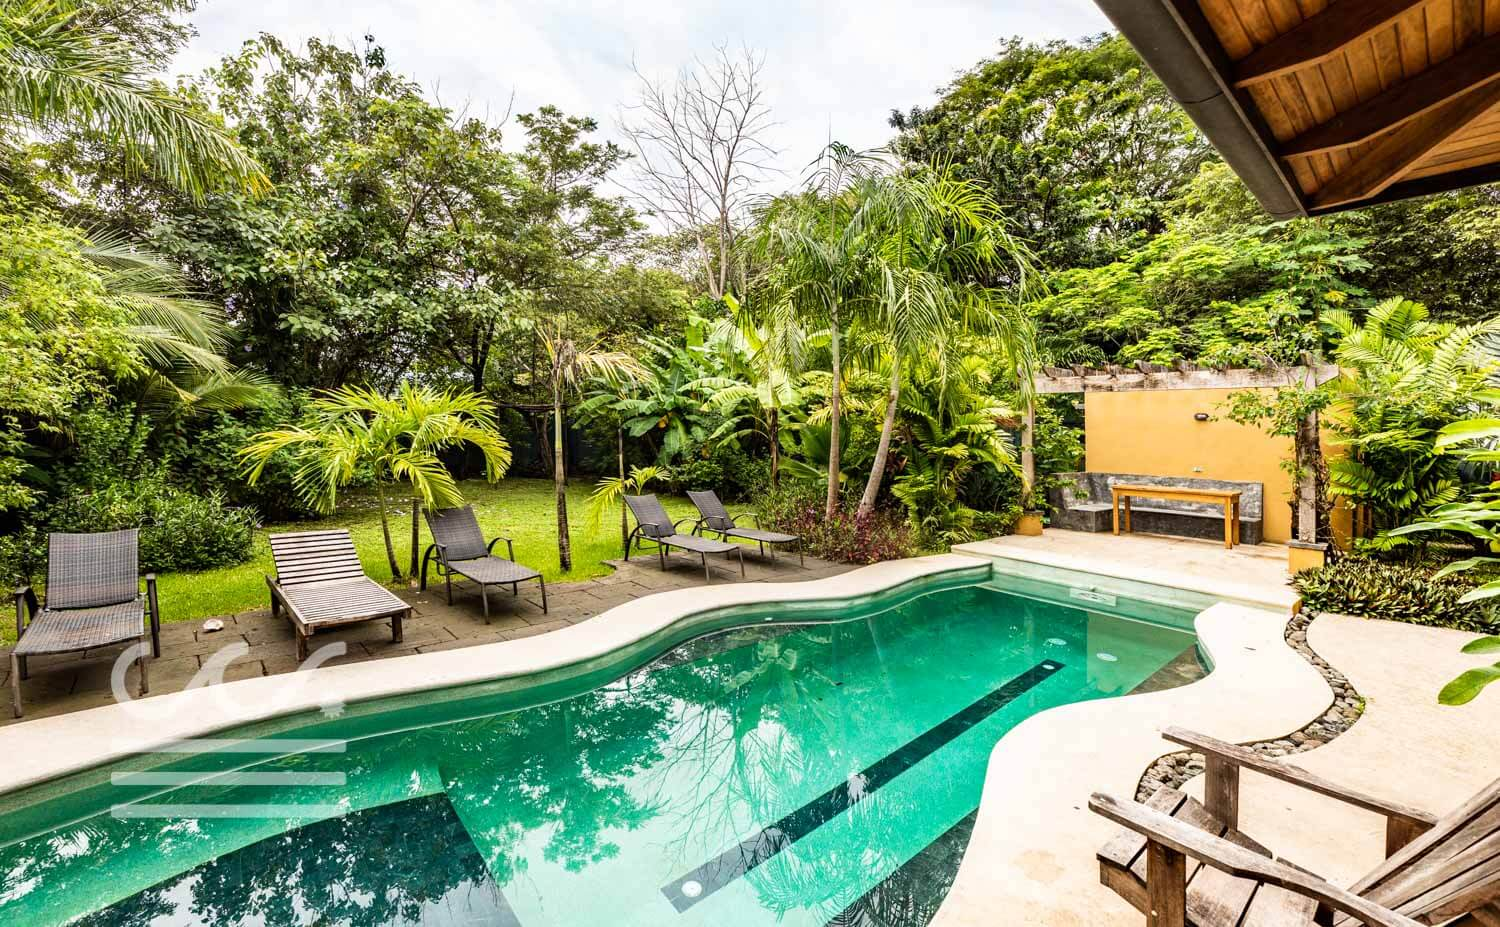 Endless-Summer-Wanderlust-Realty-Real-Estate-Rentals-Nosara-Costa-Rica-3.jpg